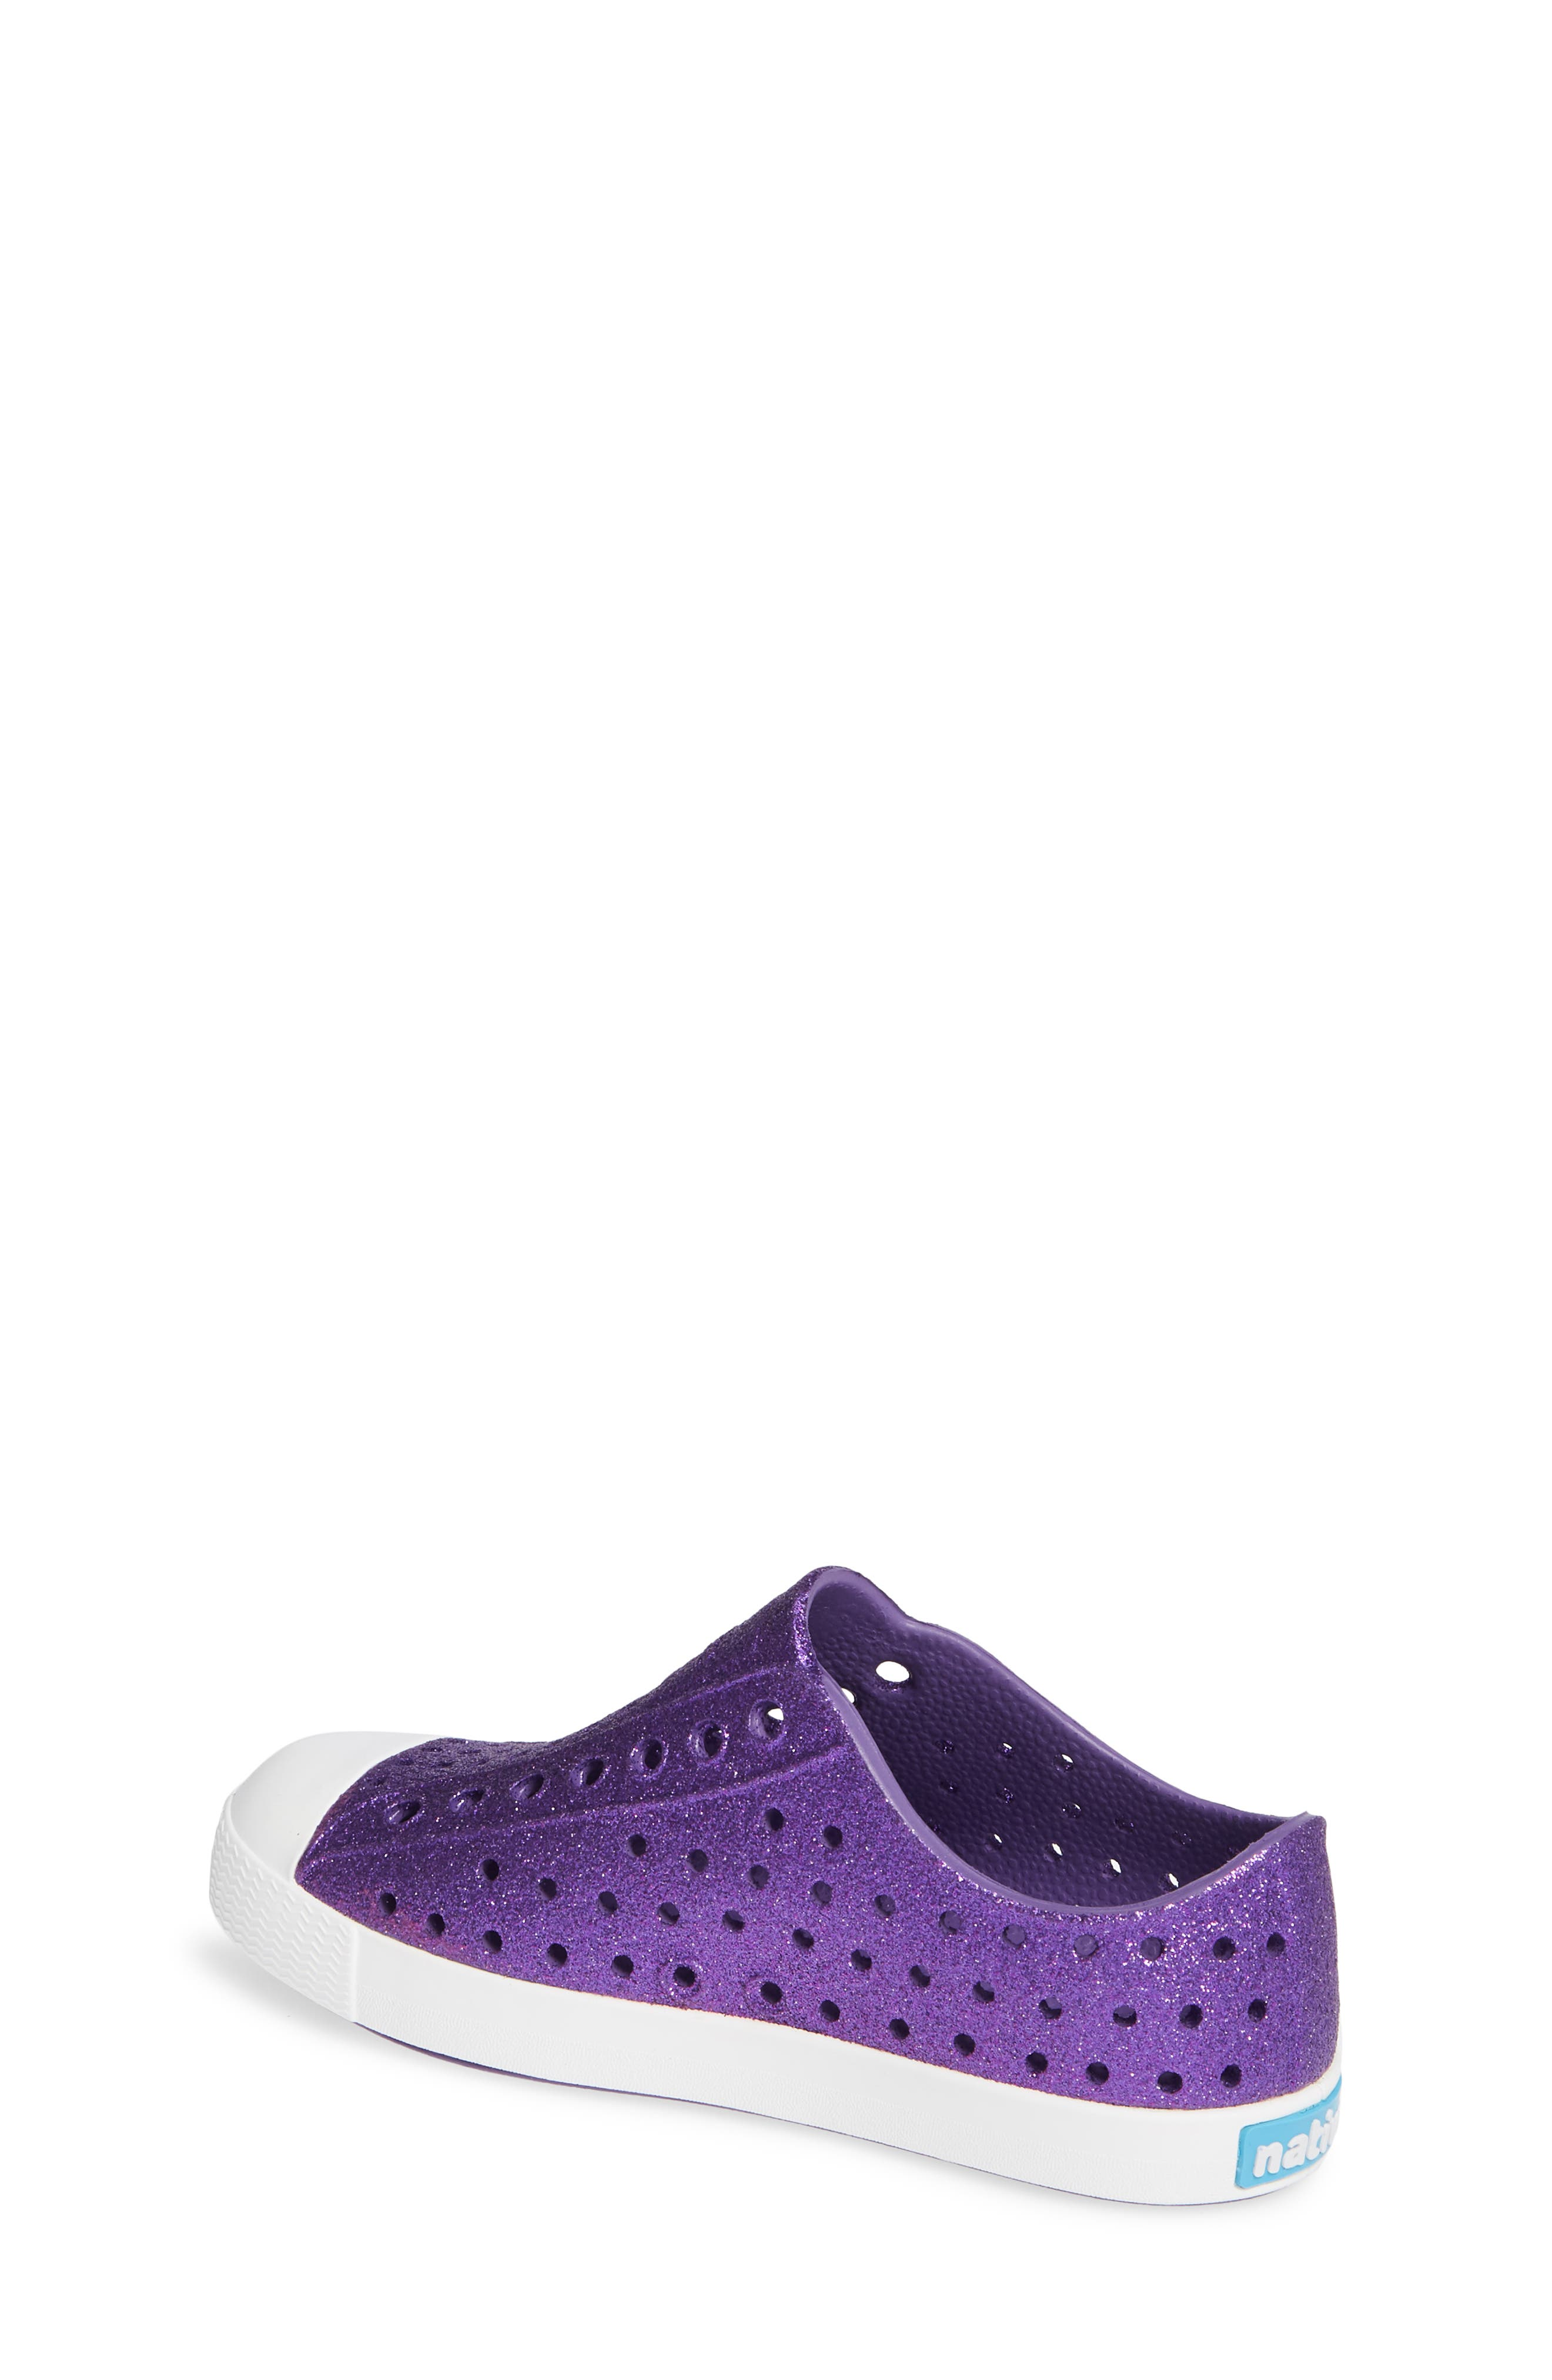 Jefferson - Bling Glitter Slip-On Sneaker,                             Alternate thumbnail 2, color,                             STARFISH BLING/ SHELL WHITE